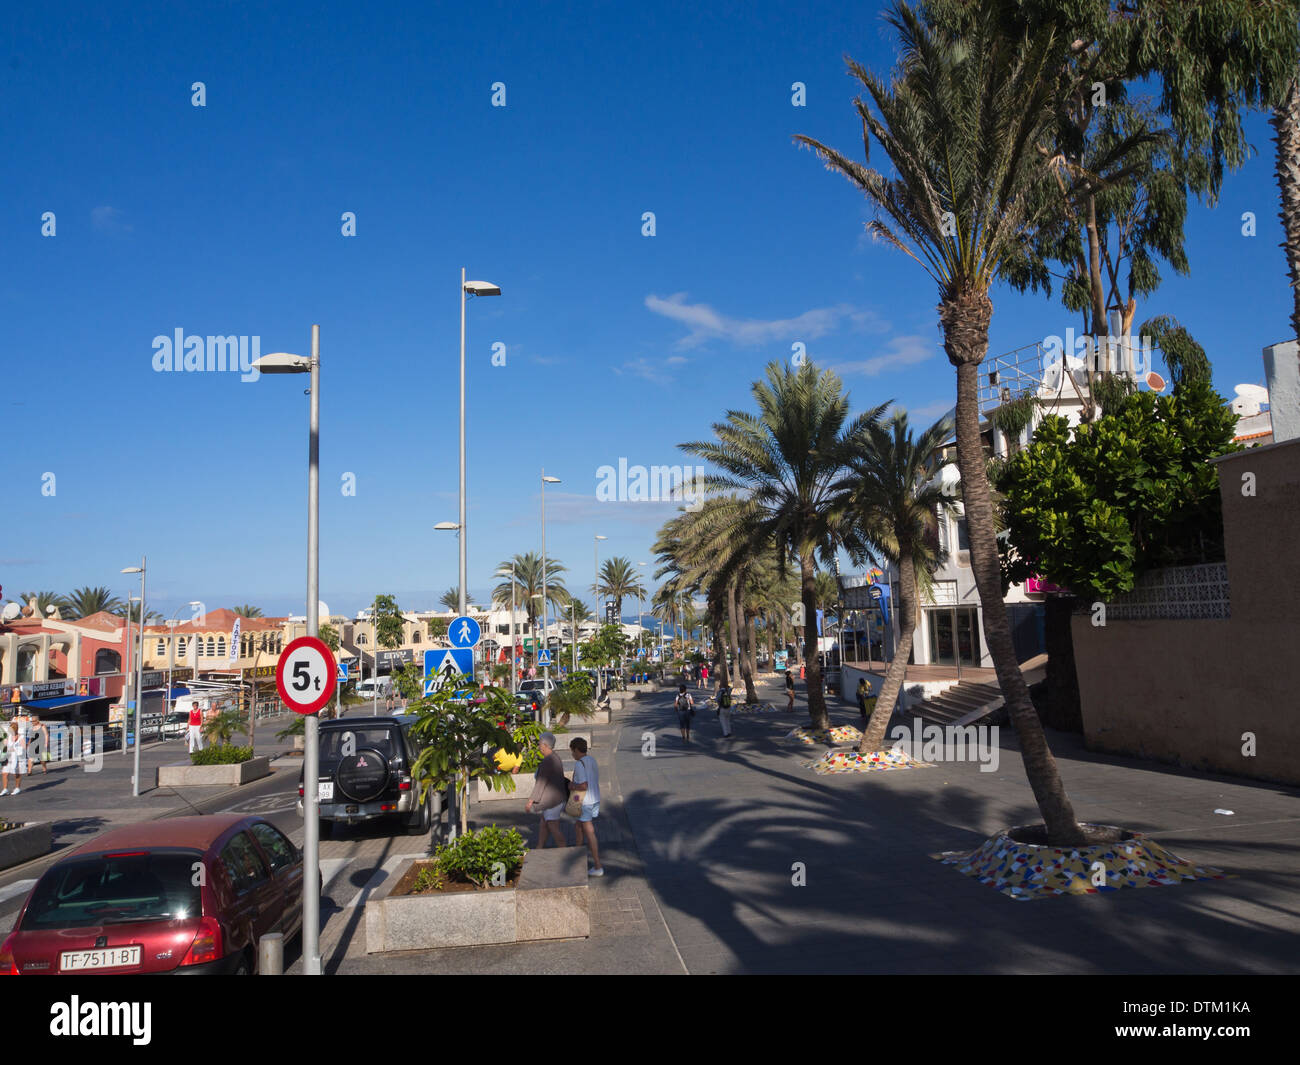 Palm lined street with wide pavements in the tourist resort of Playa de Las Americas Tenerife Canary Islands Spain - Stock Image